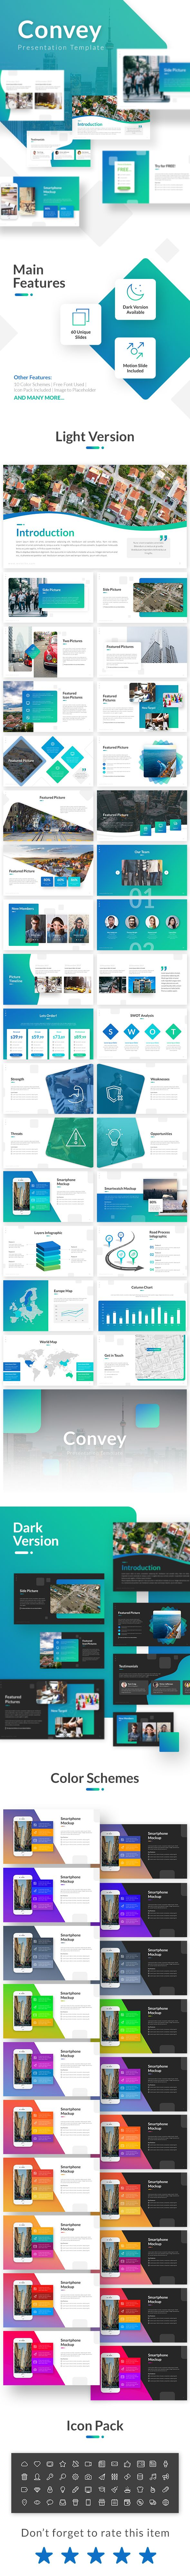 Convey Presentation Template - Business PowerPoint Templates